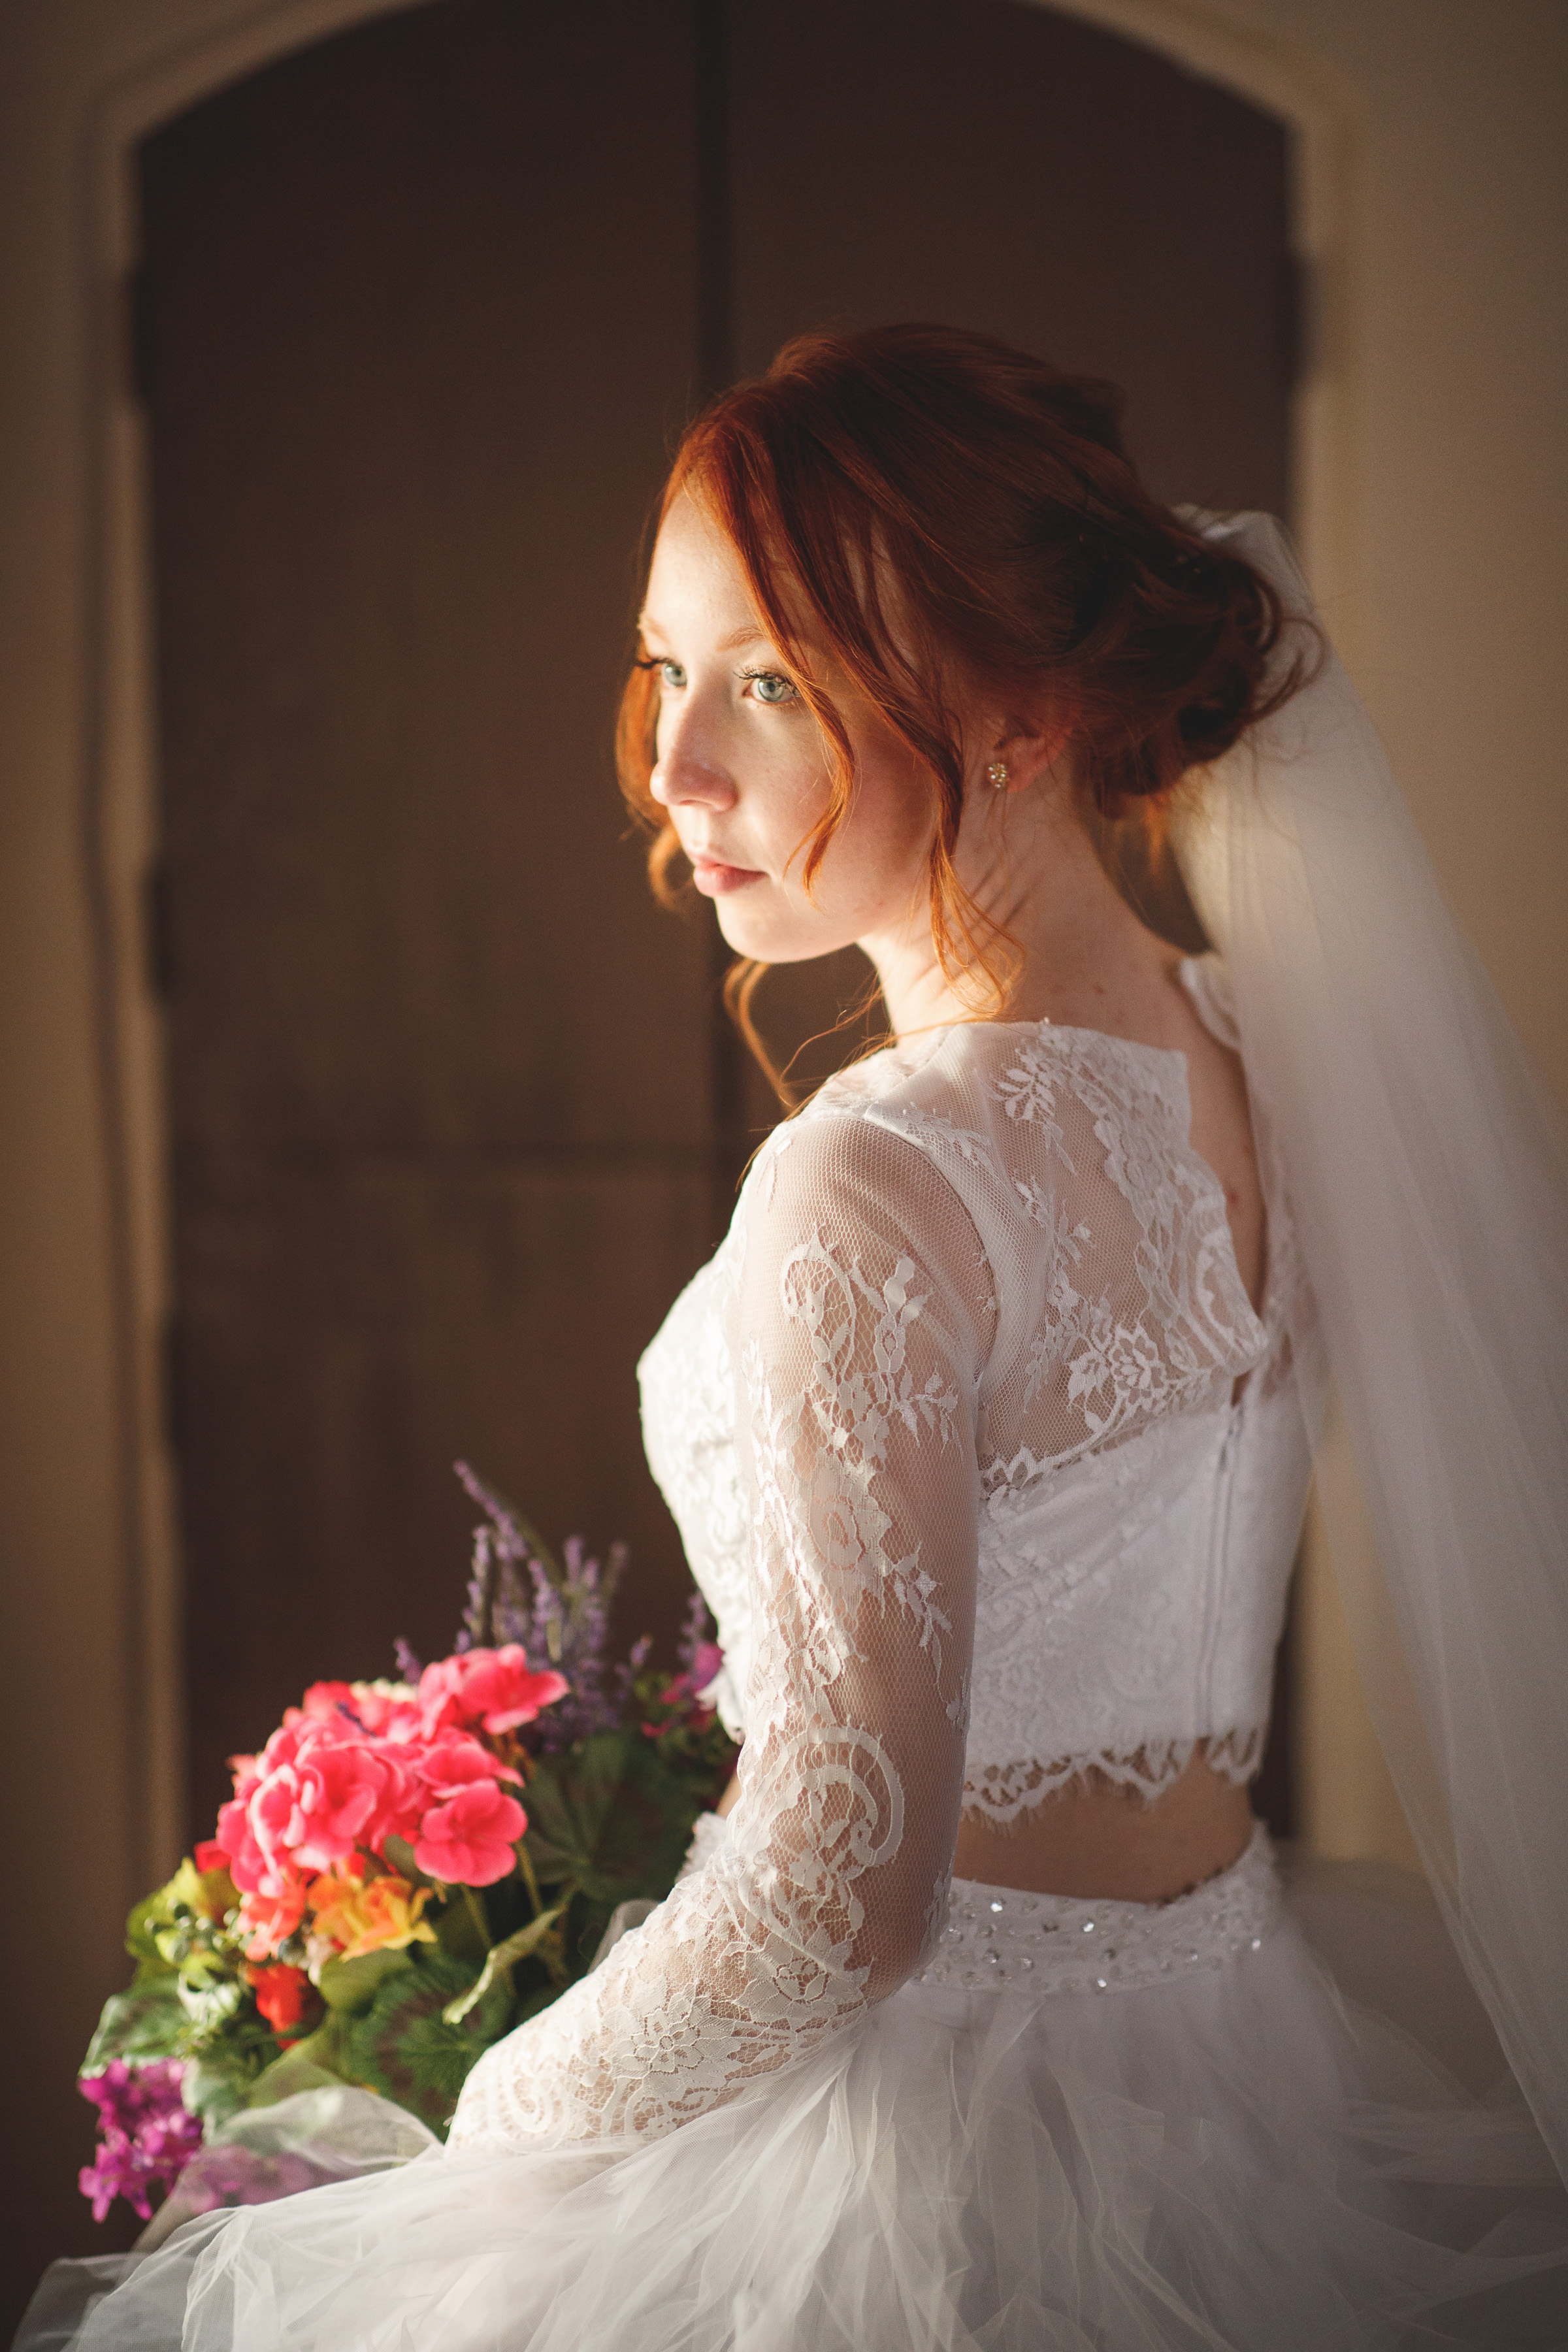 WEDDING EDITORIAL - PHOTOGRAPHY BY JD RENES